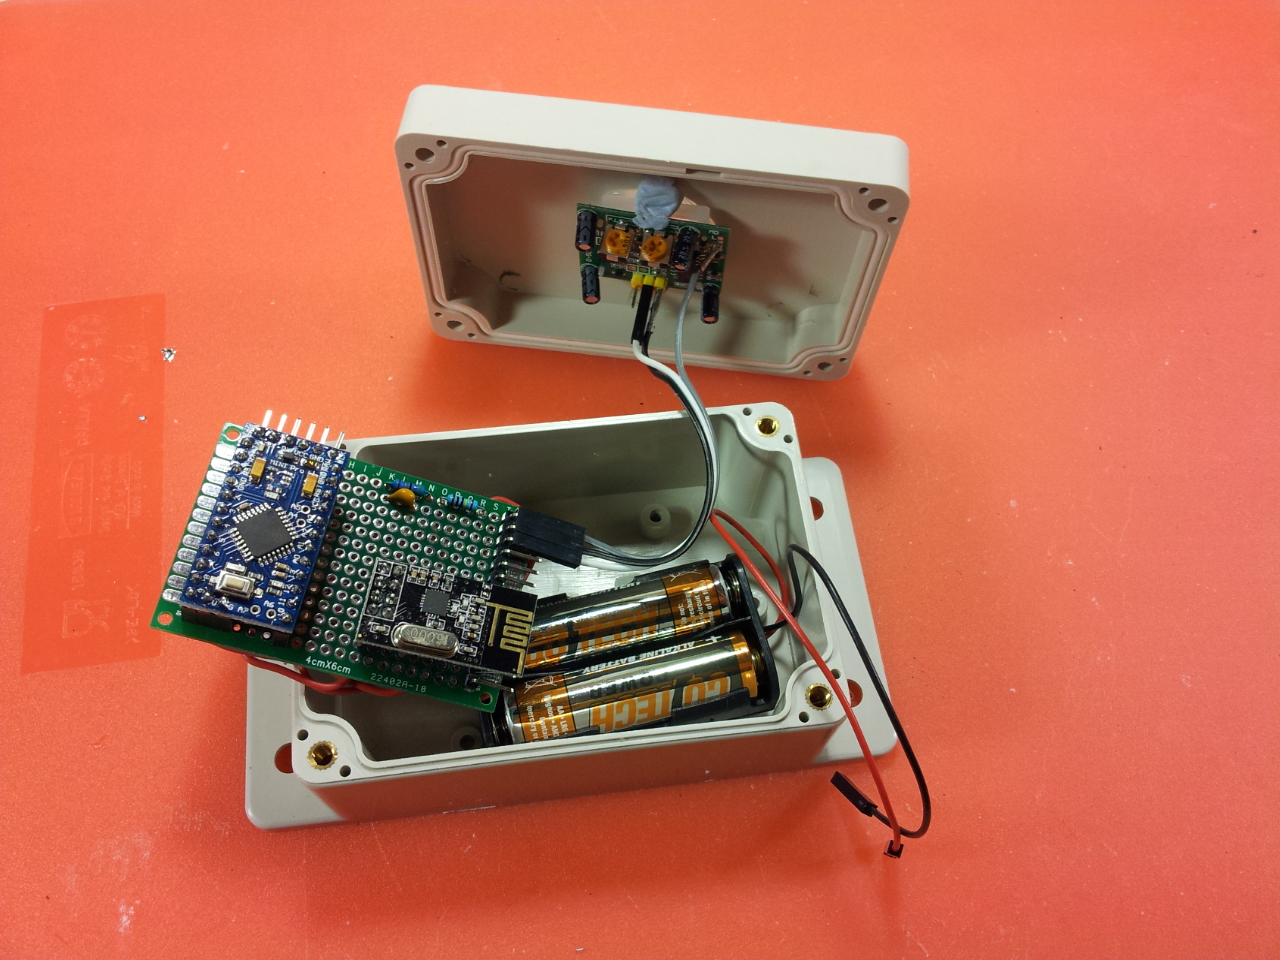 This Is A View Of A Light Sensor Circuit With Its Components Soldered